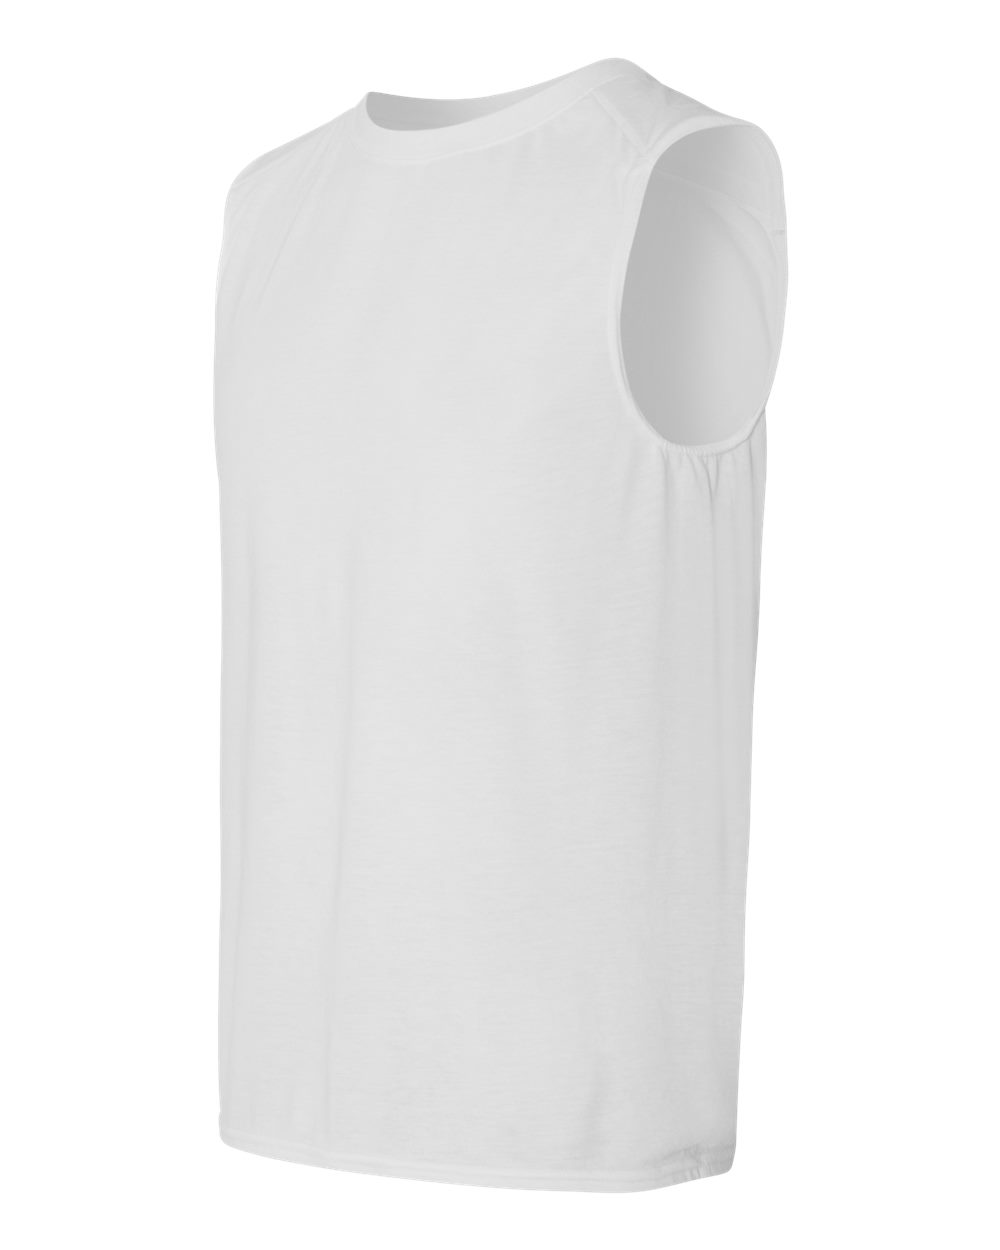 Gildan 42700 - Performance Sleeveless T-Shirt